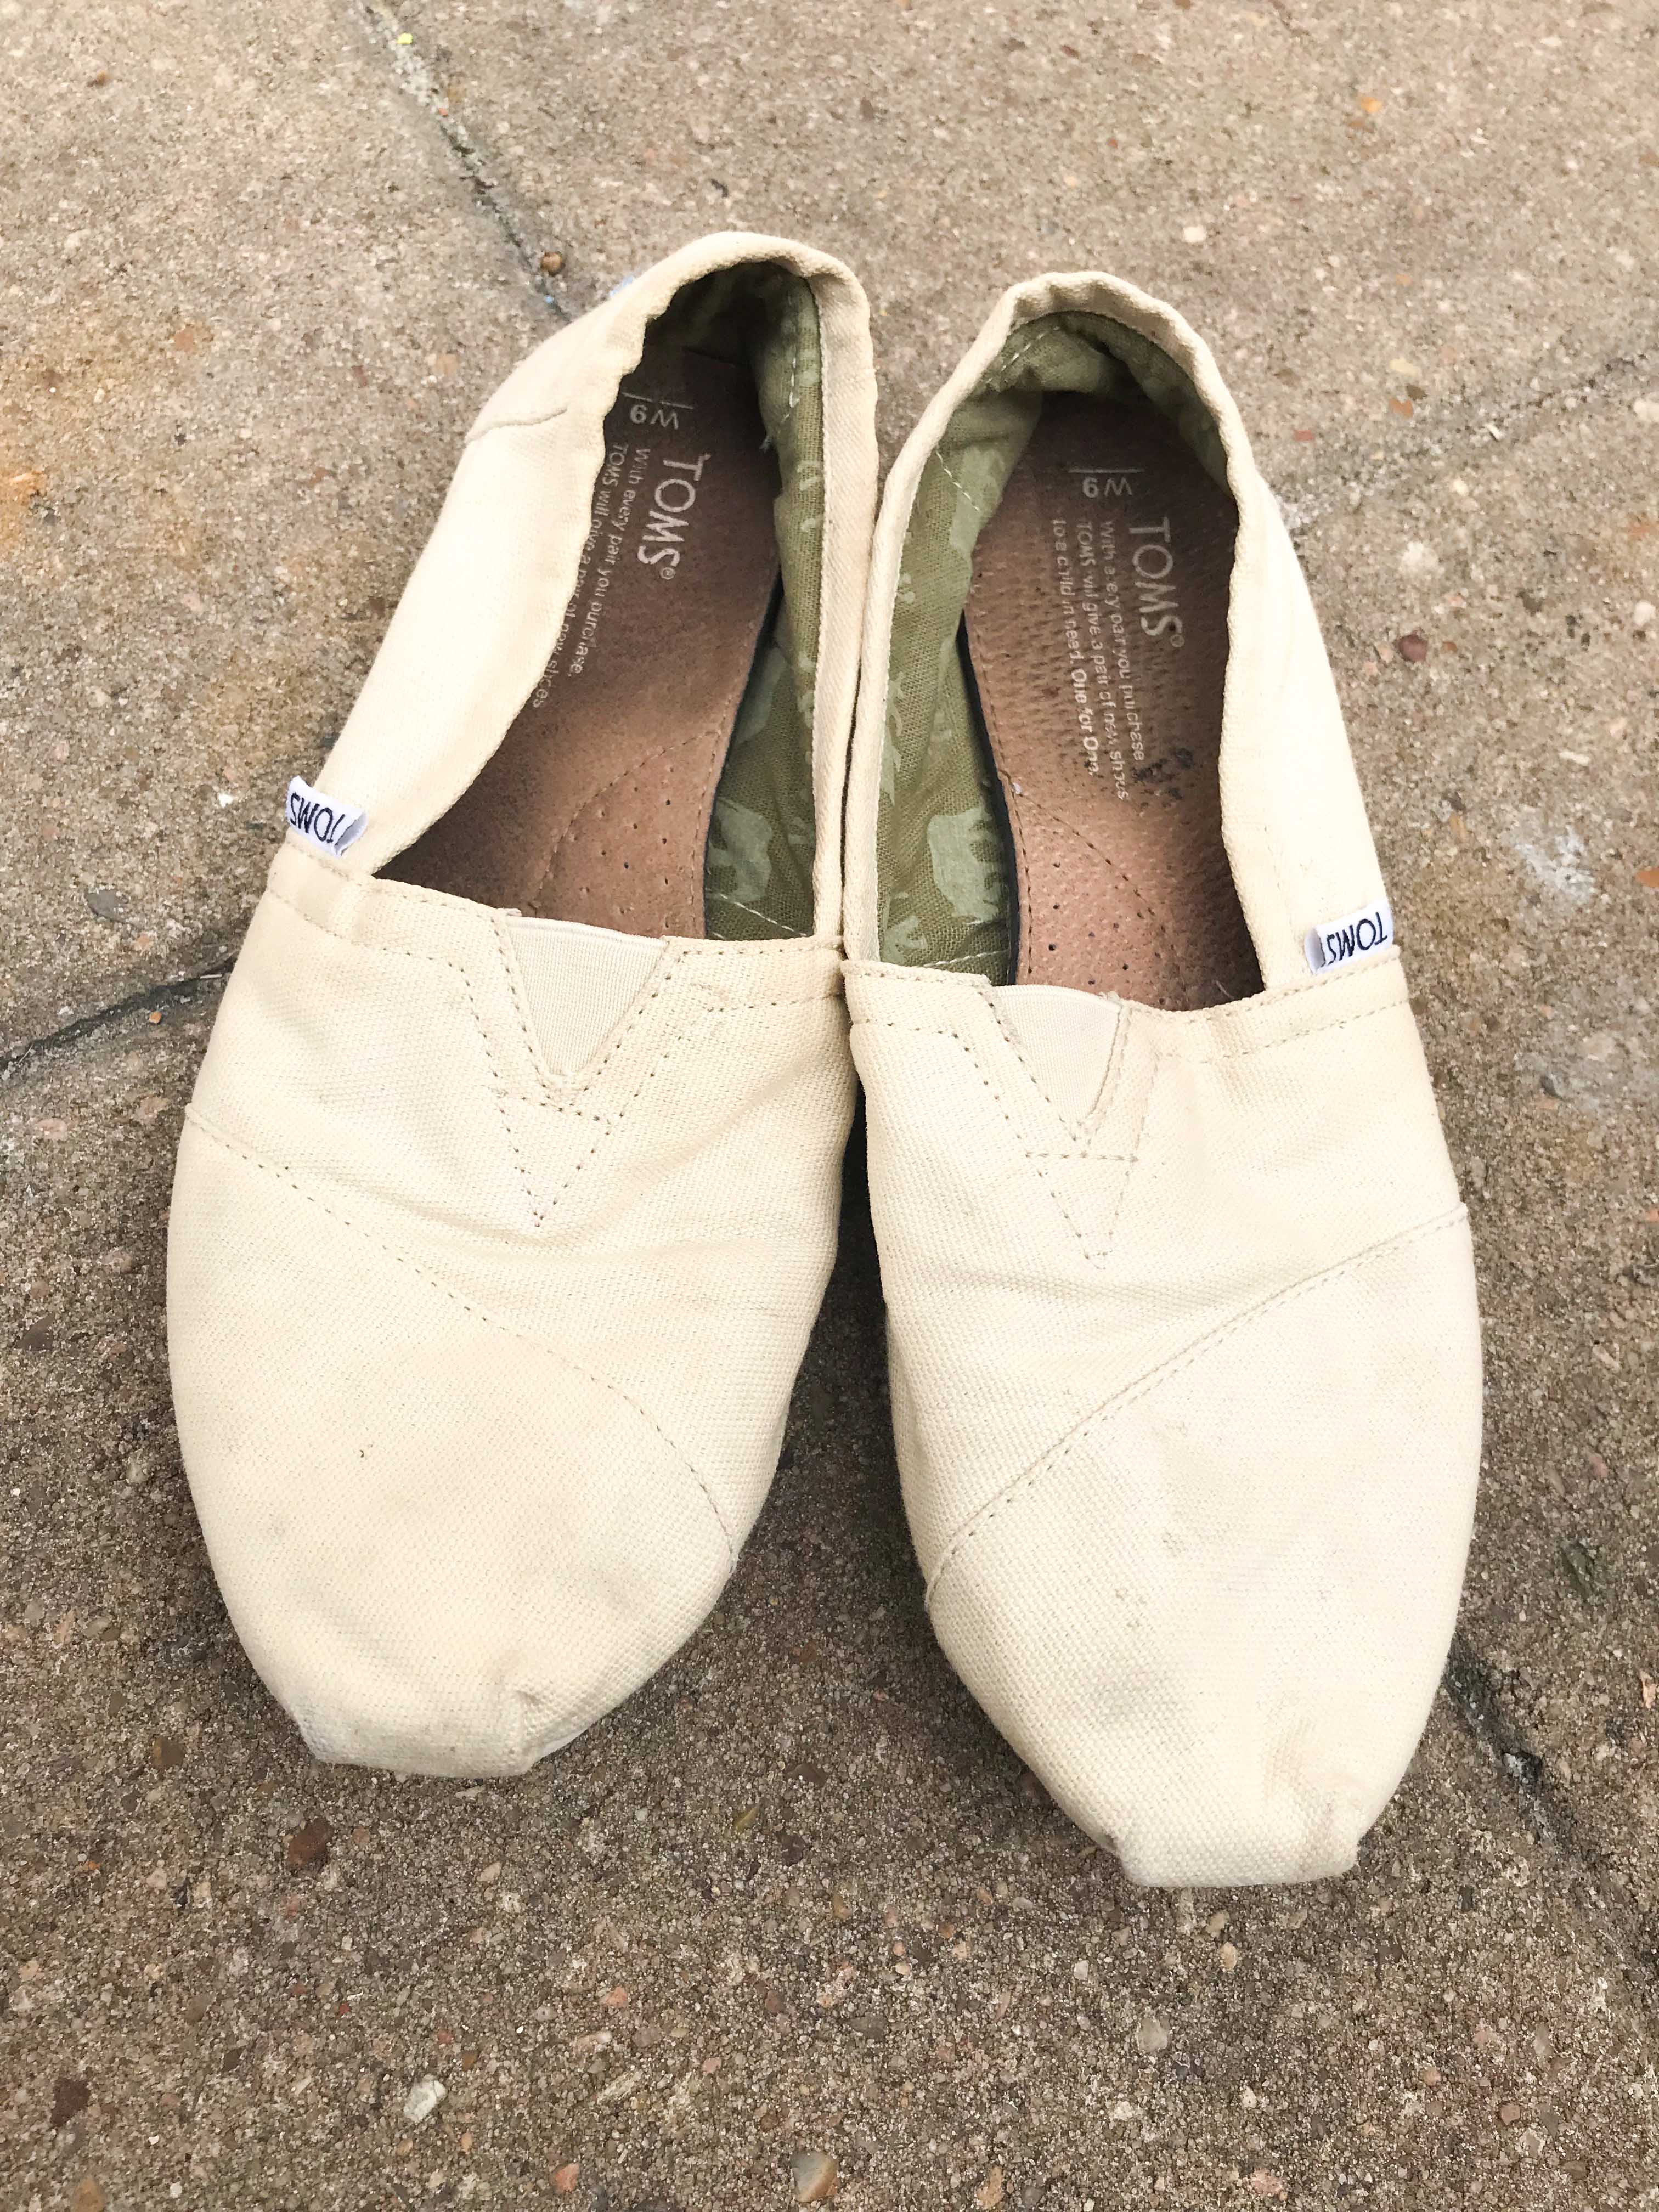 How to clean canvas shoes & Toms shoes